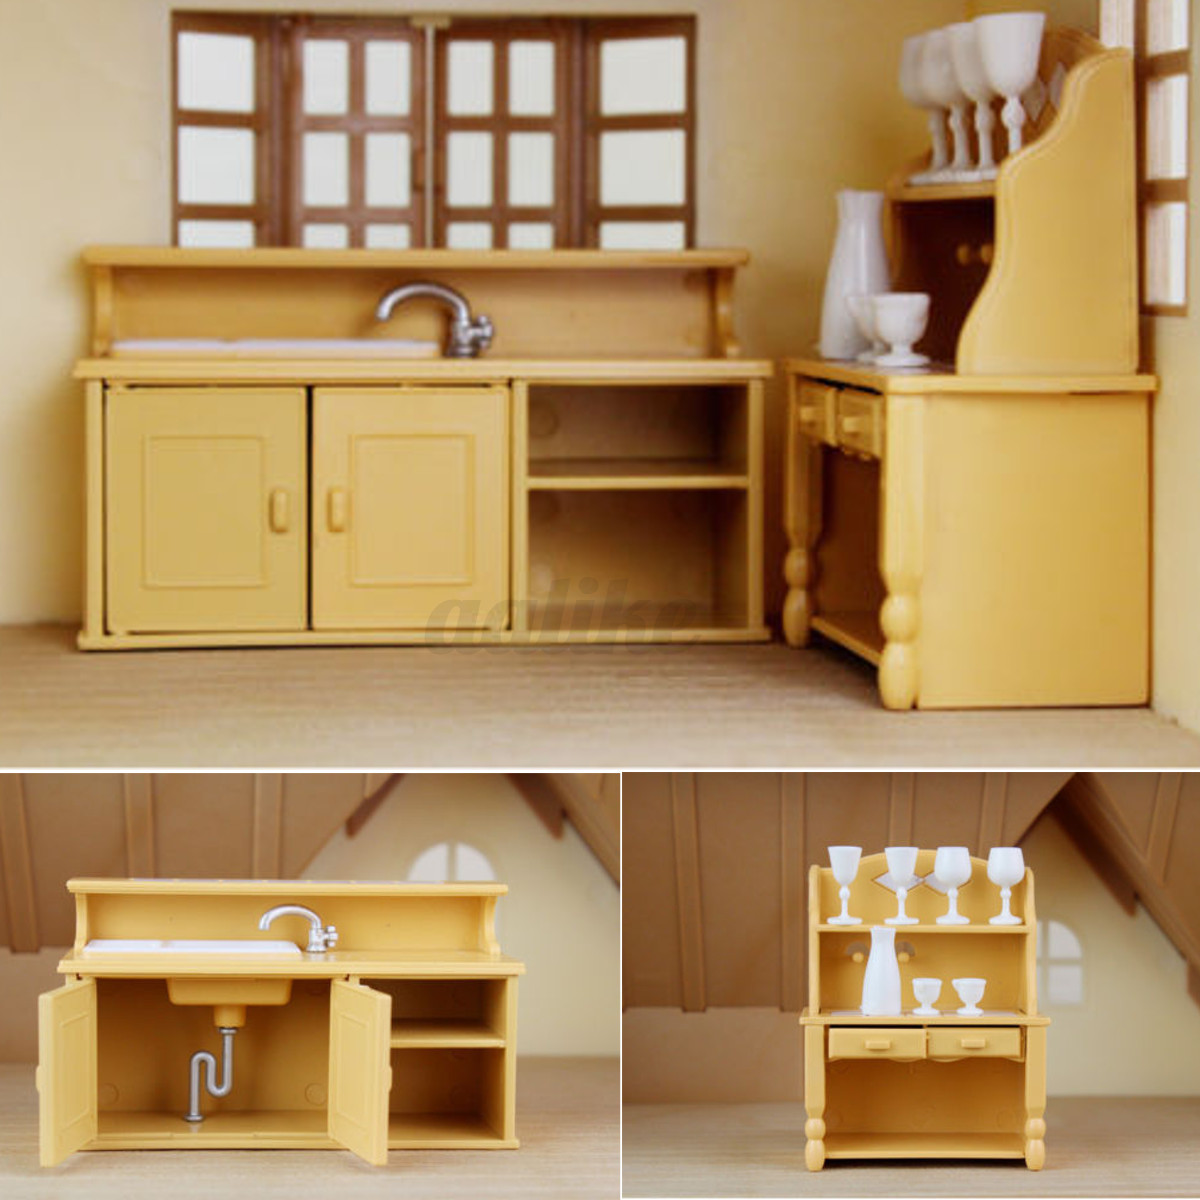 Kitchen Furniture Australia: Plastic Table Miniature Doll House Furniture Toy Set